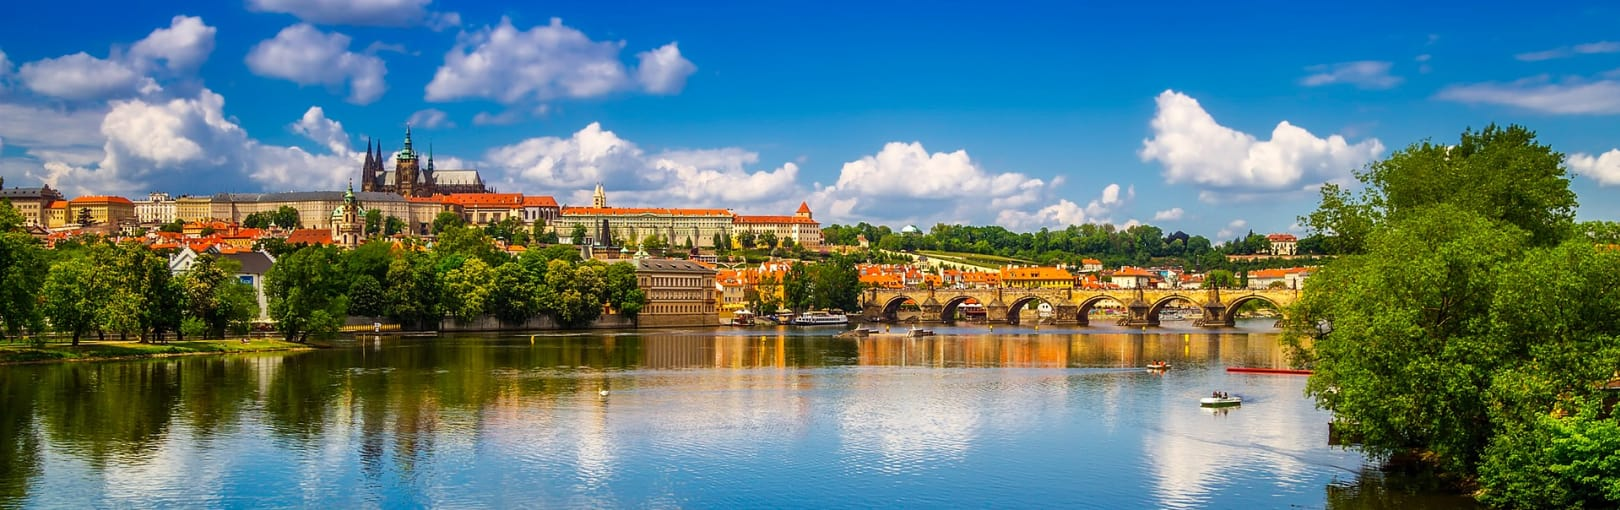 Bus Tours of Prague by City Sightseeing Prague. Double Decker City Bus Tours Hop On Hop Off, Boat Tours, Walking Tours and more.